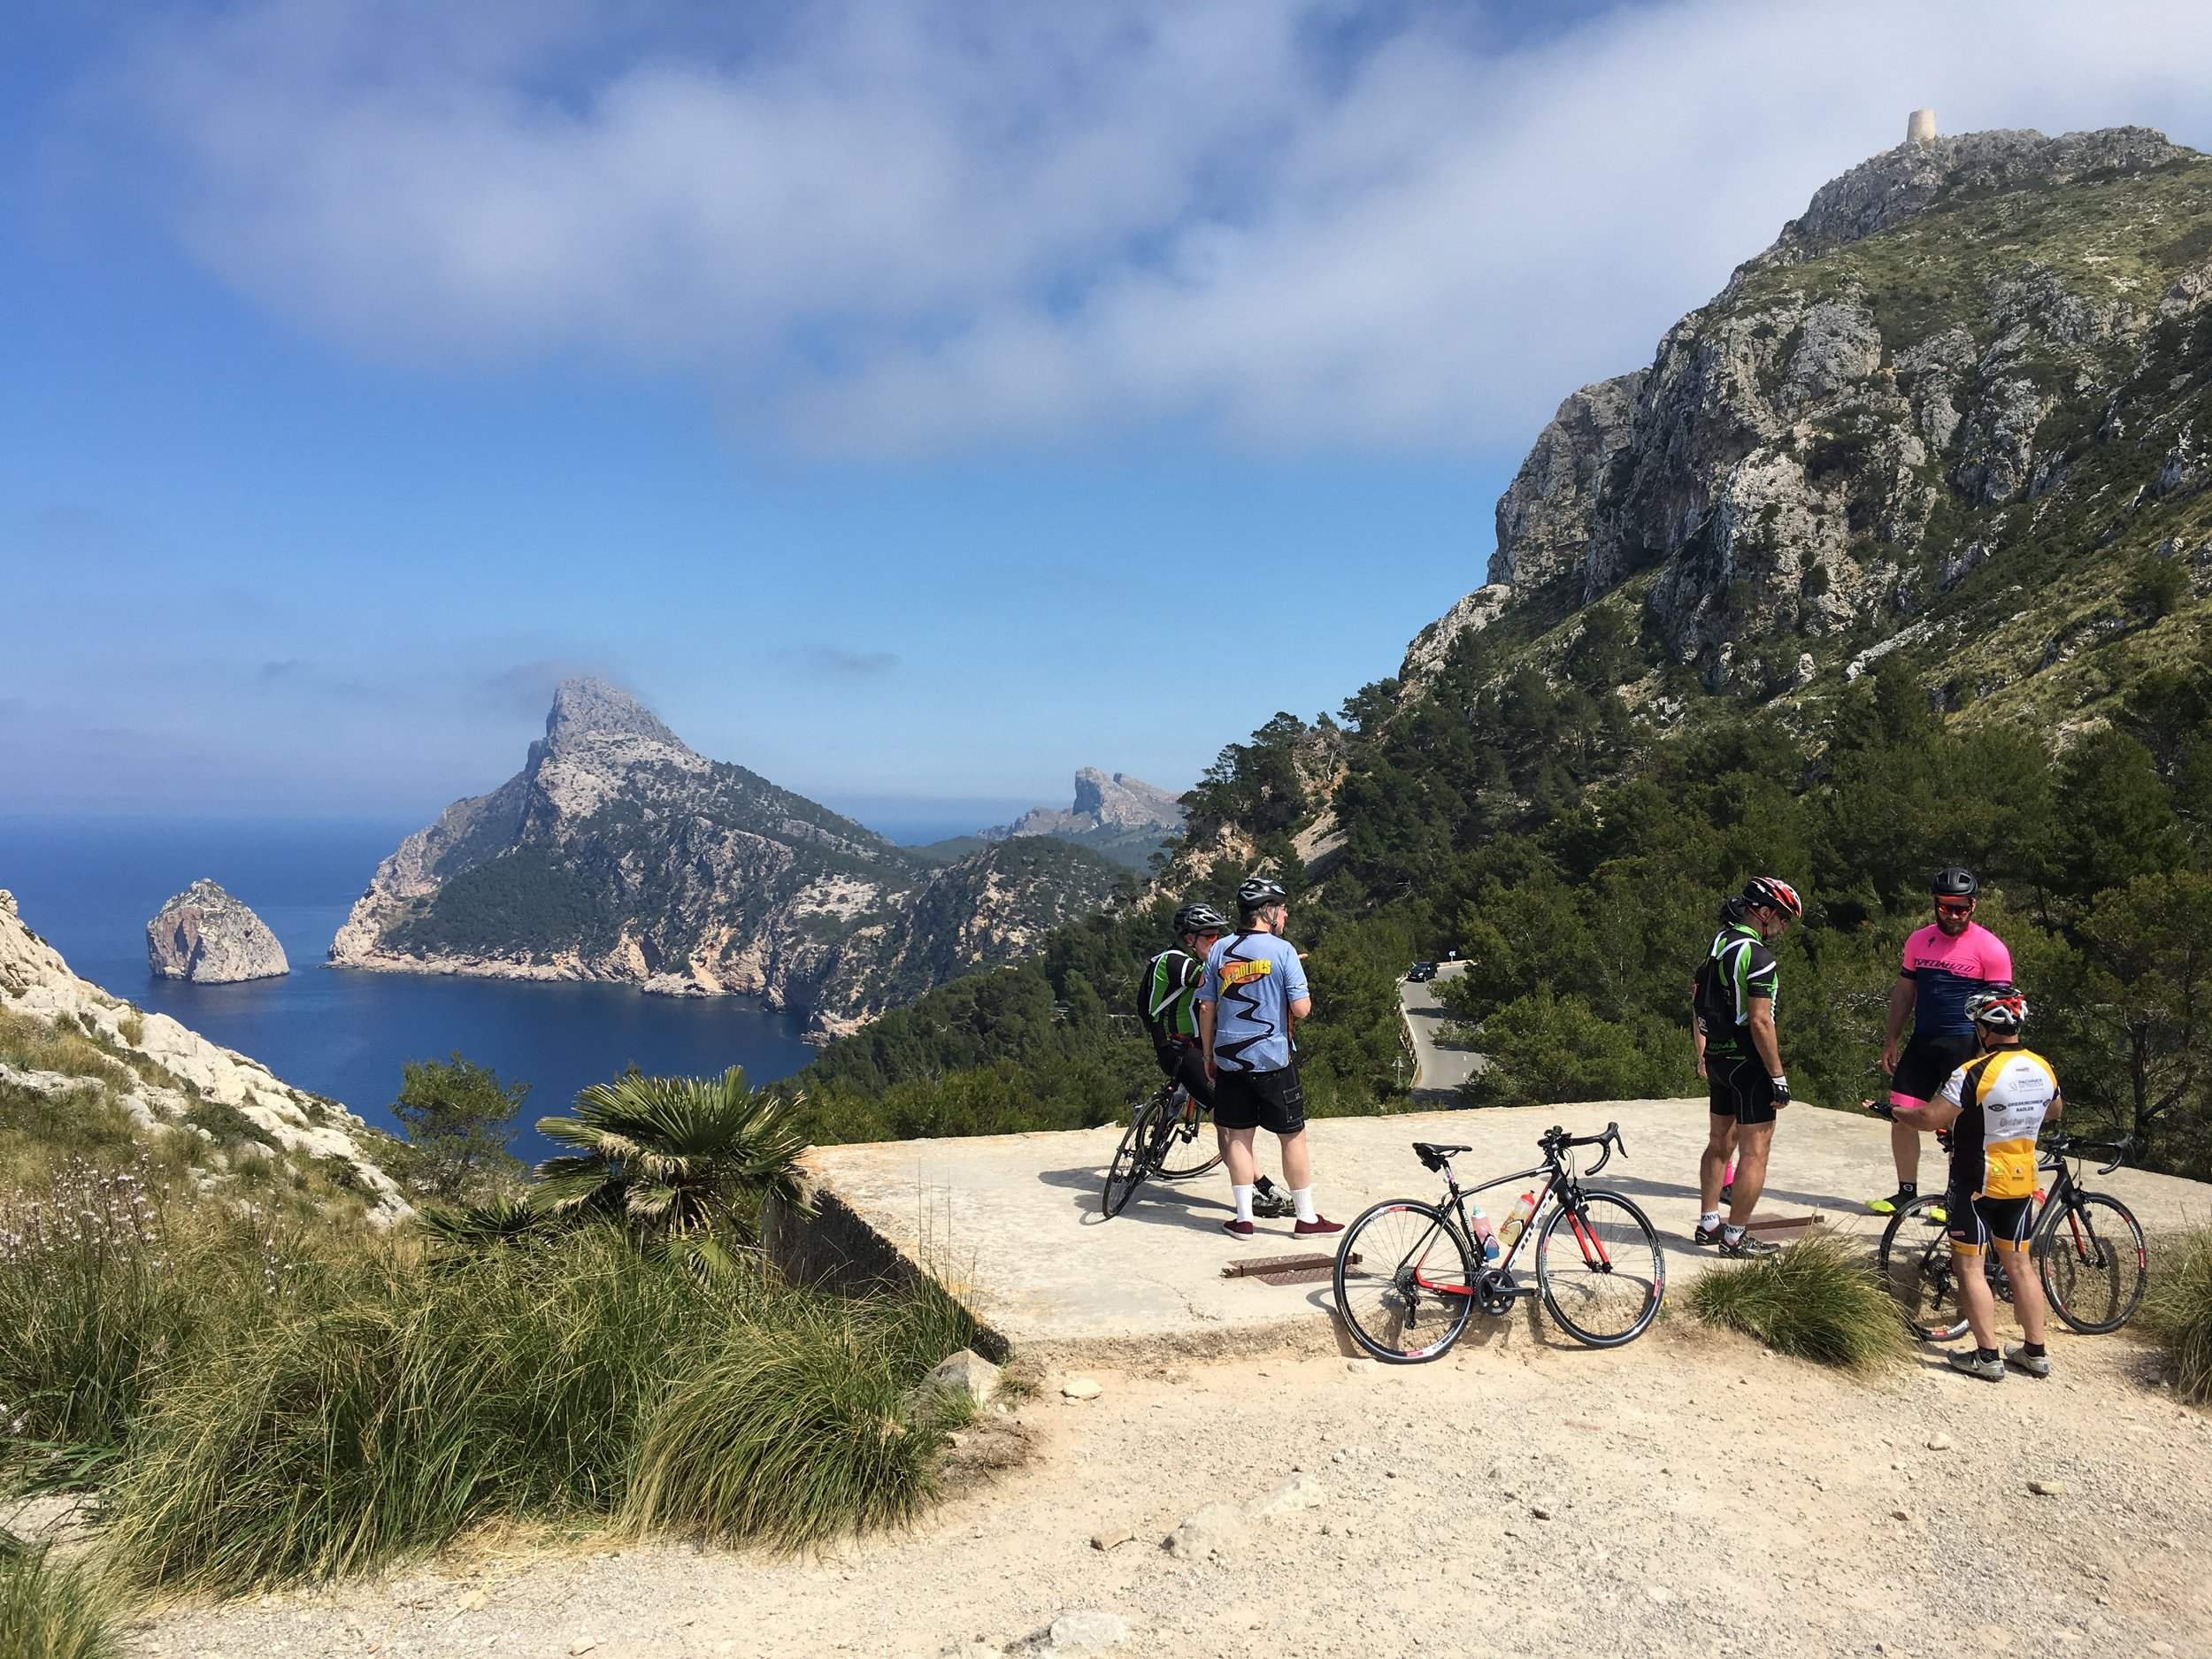 Pollensa and the north coast is awash with cyclists from northern Europe